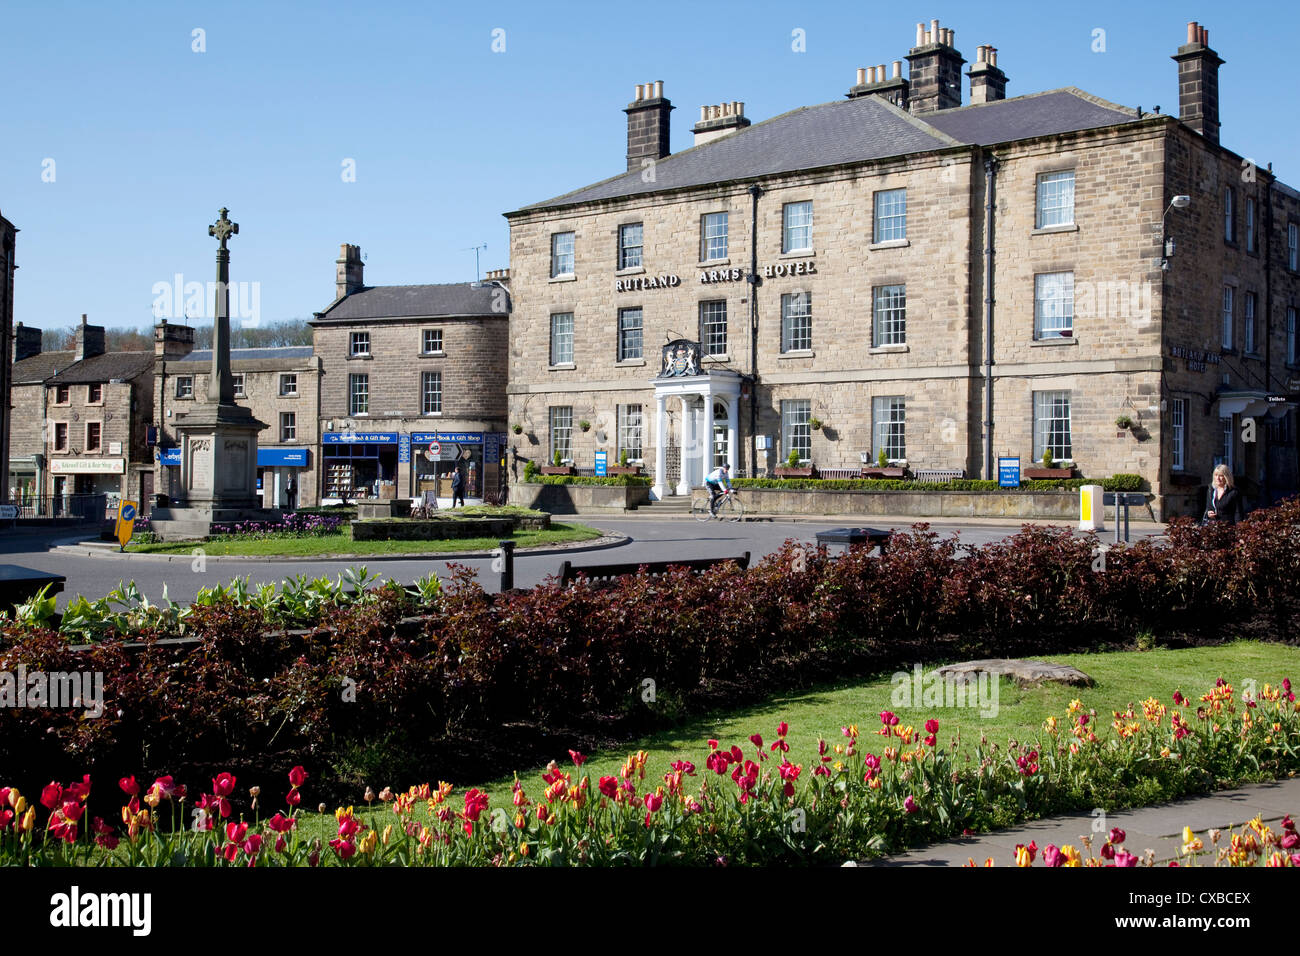 Rutland Arms Hotel and Town Cross, Bakewell, Derbyshire, England, United Kingdom, Europe - Stock Image